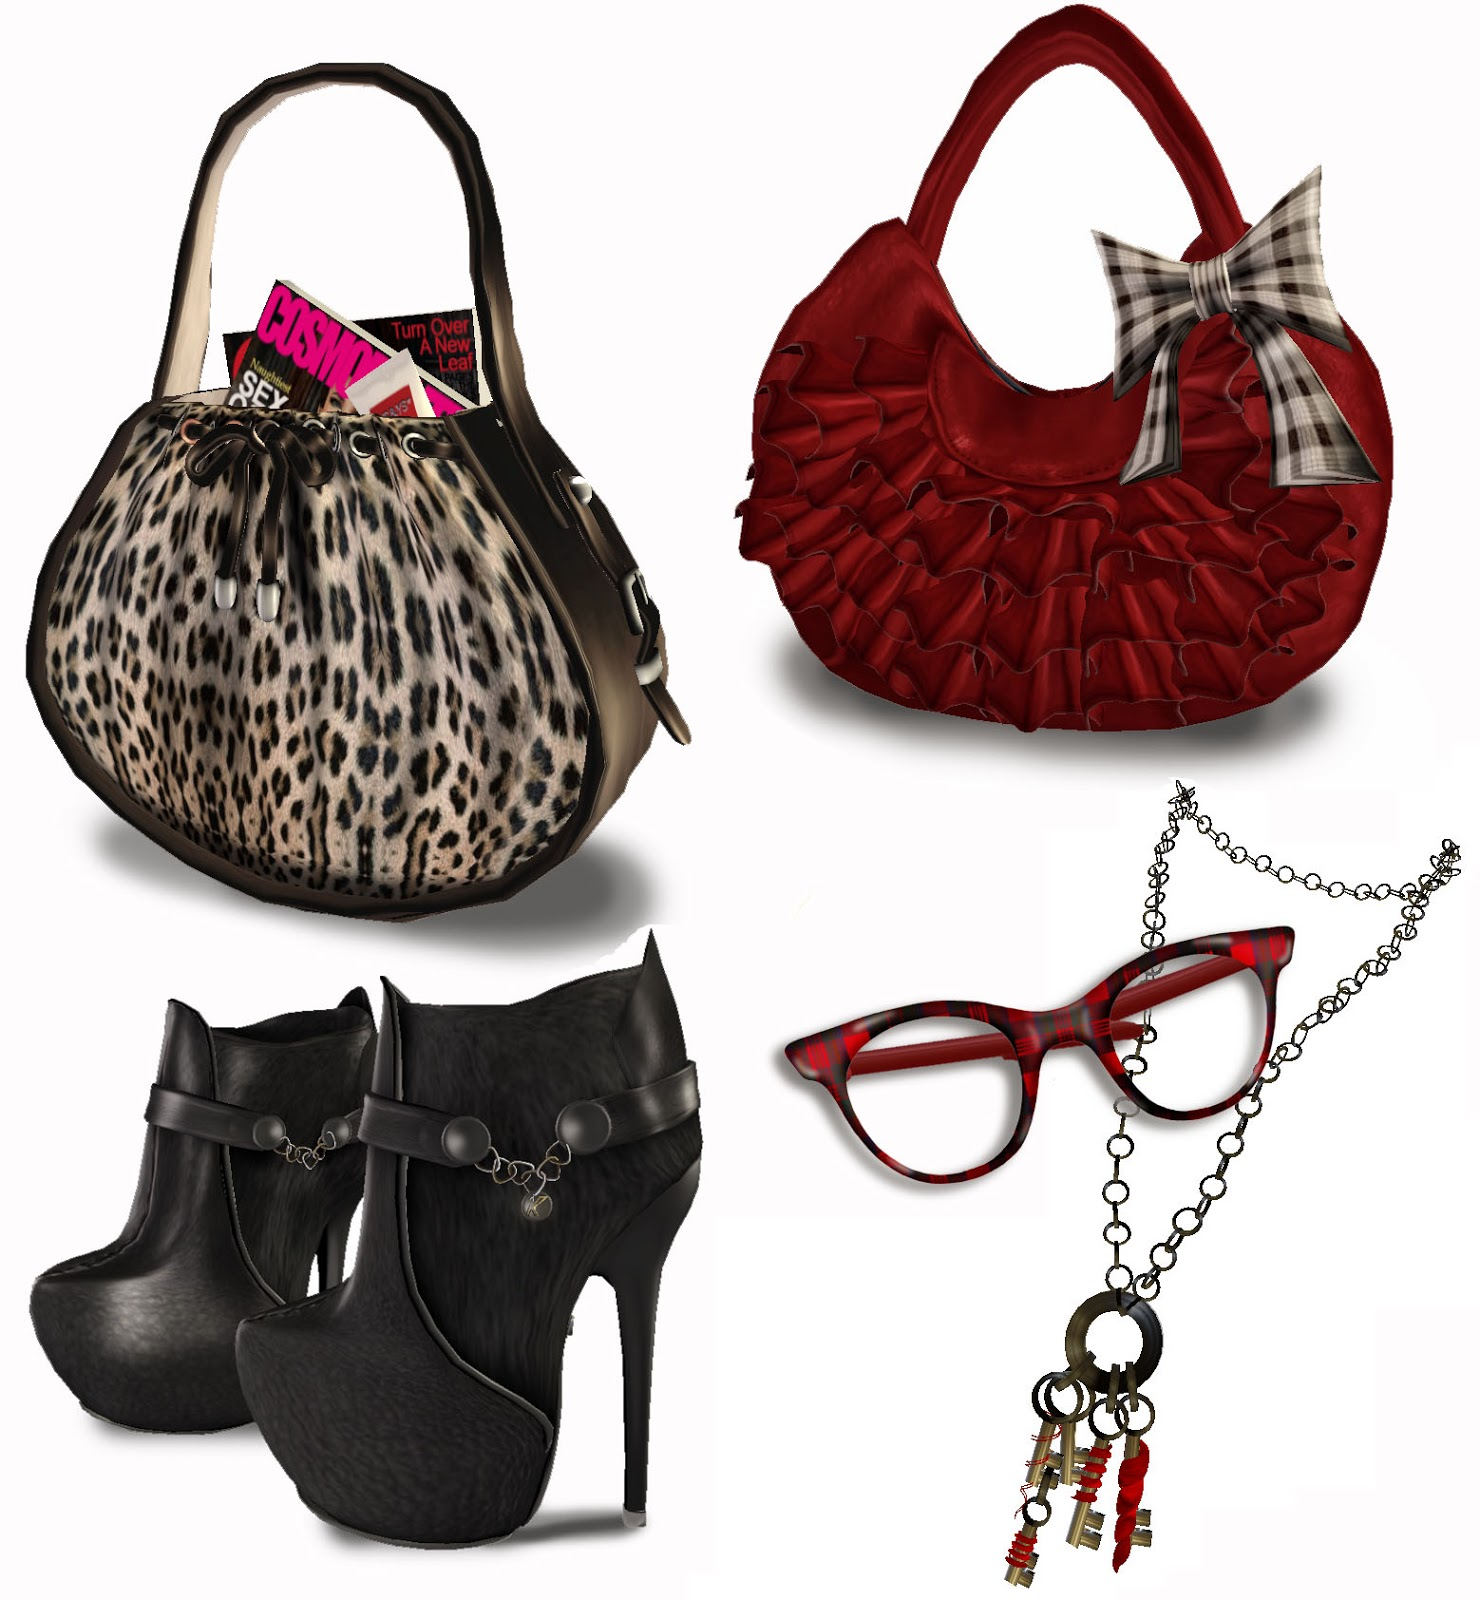 Online Shopping in India-Online Shop for Shoes, Clothing ...